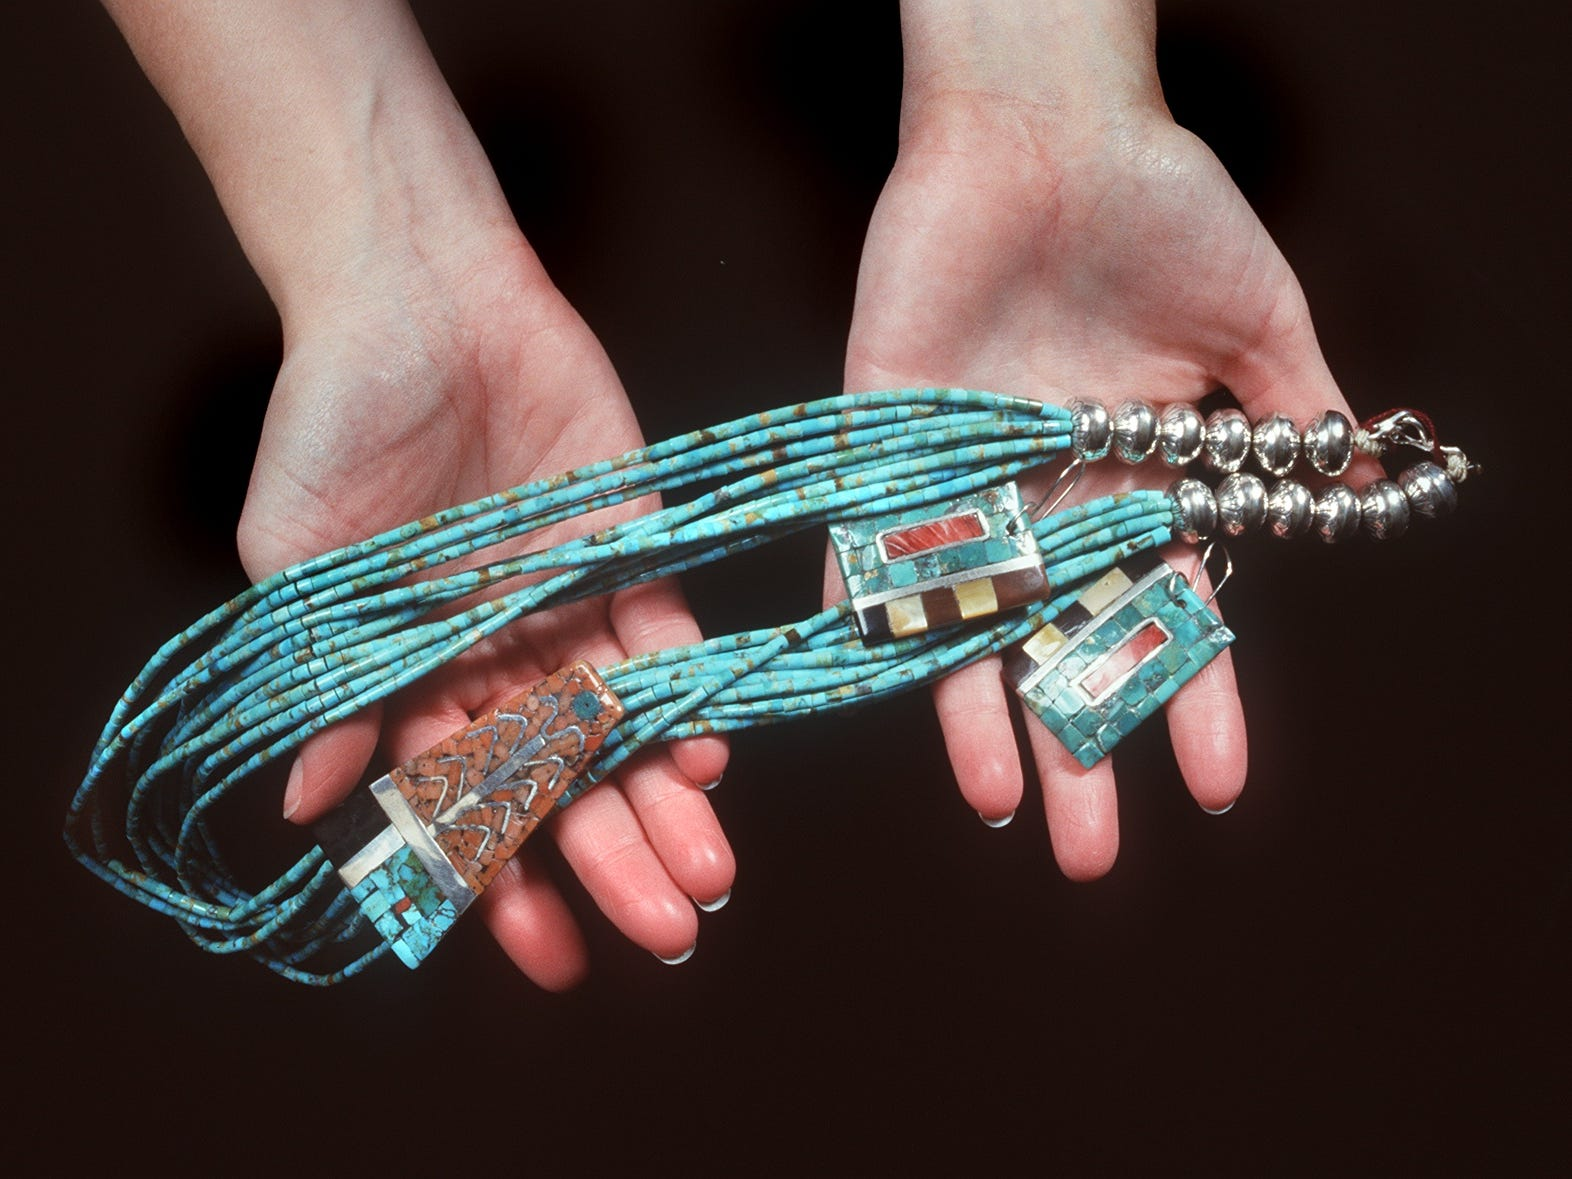 Turquoise, Arizona's official state gem, is often used in Native American jewelry. Arizona turquoise also was one of the official colors of the Arizona Diamondbacks, until the team decided it looked better in Sedona red.